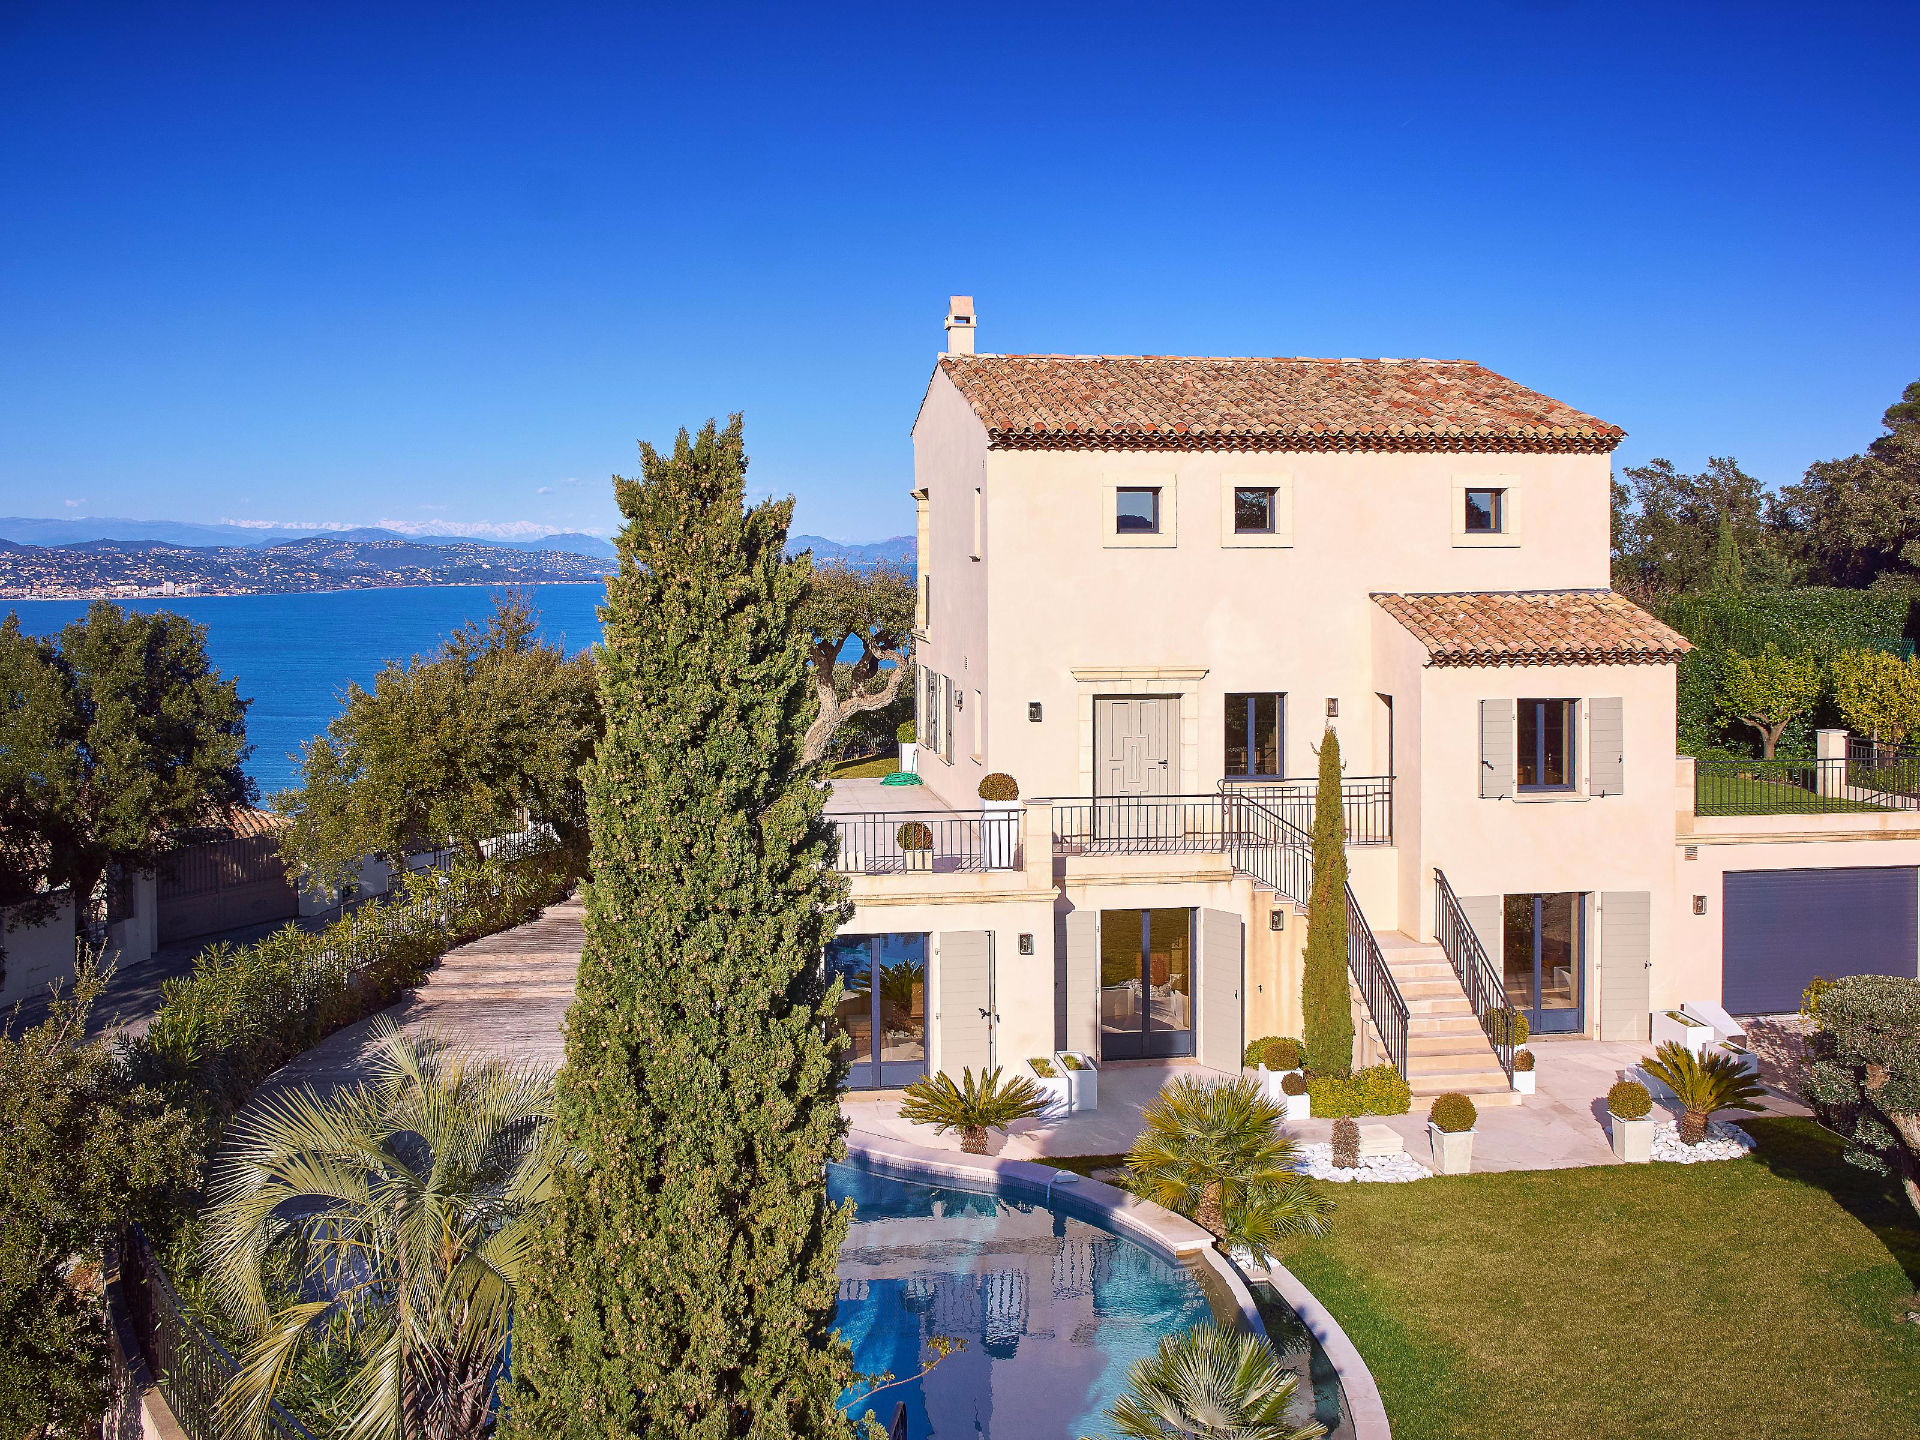 Single Family Home for Sale at Luxurious villa with breathtaking sea views over the golfe of St-Tropez Gassin Gassin, Provence-Alpes-Cote D'Azur, 83580 France